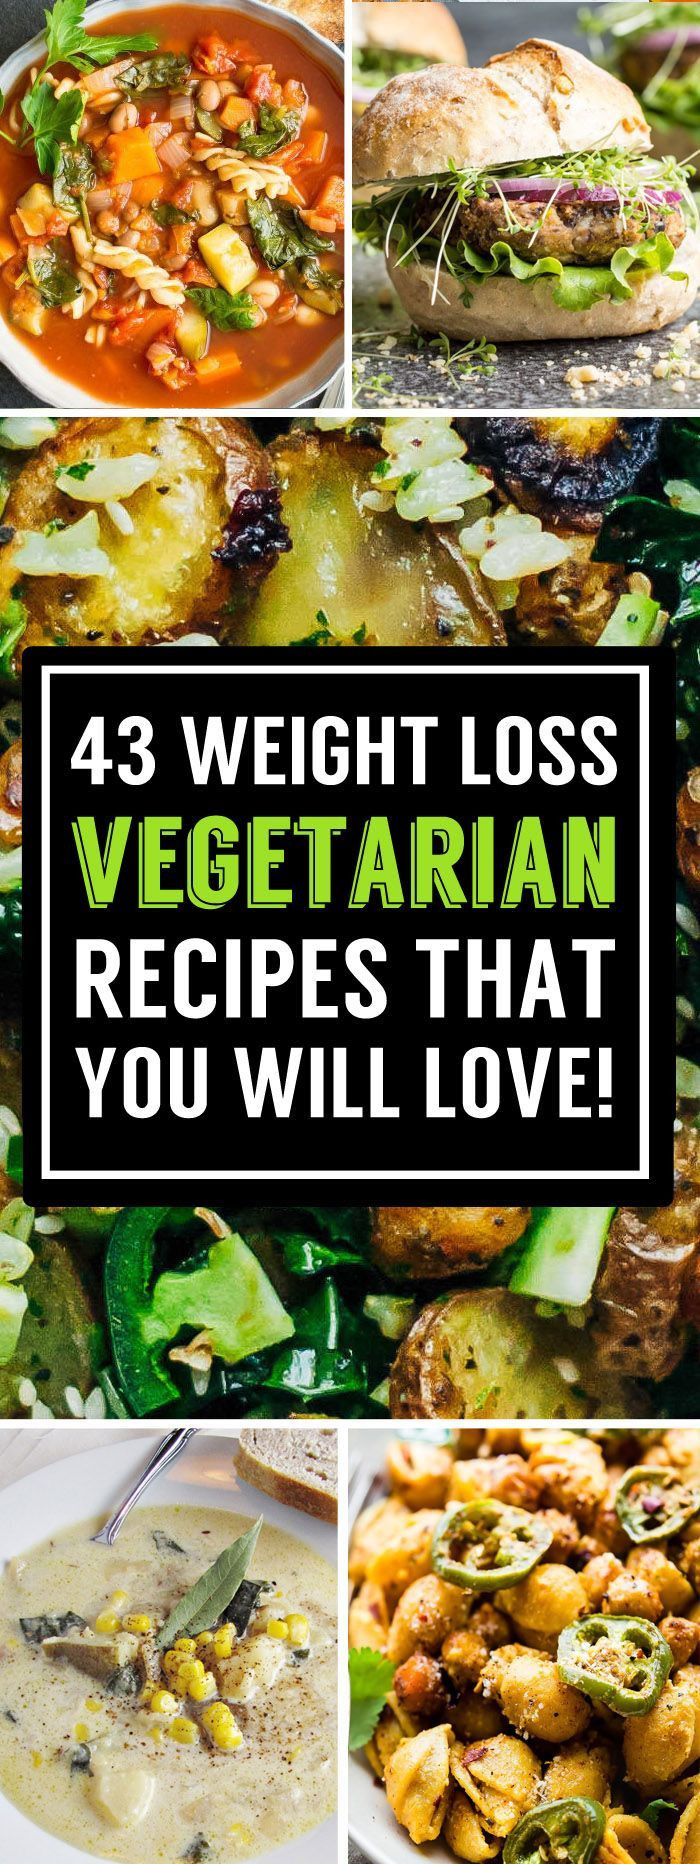 Healthy Vegetarian Dinner Recipes For Weight Loss  The 25 best Healthy ve arian recipes ideas on Pinterest